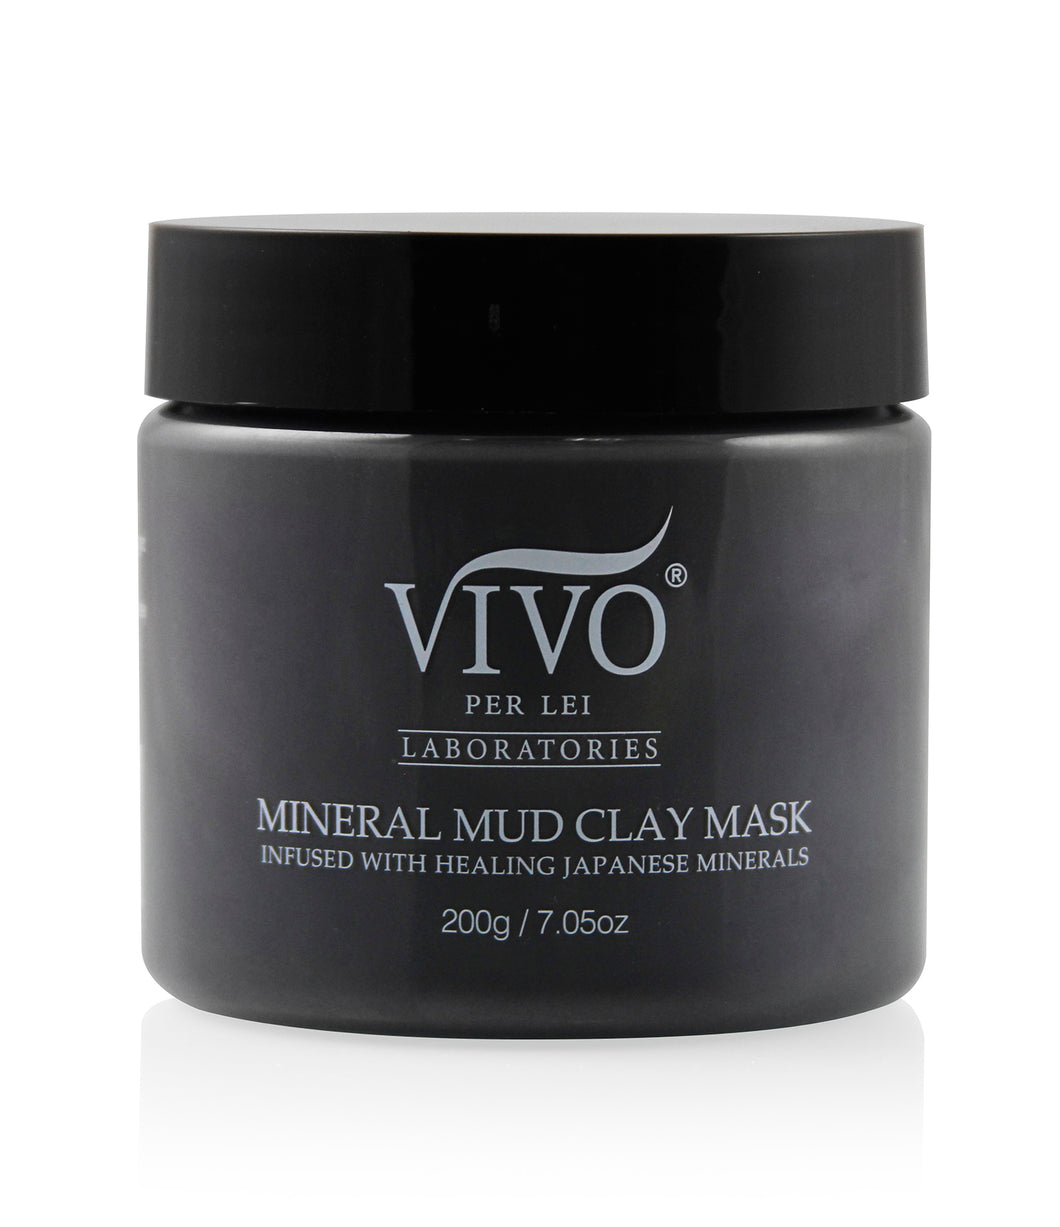 Vivo Per Lei Clay Mud Mask